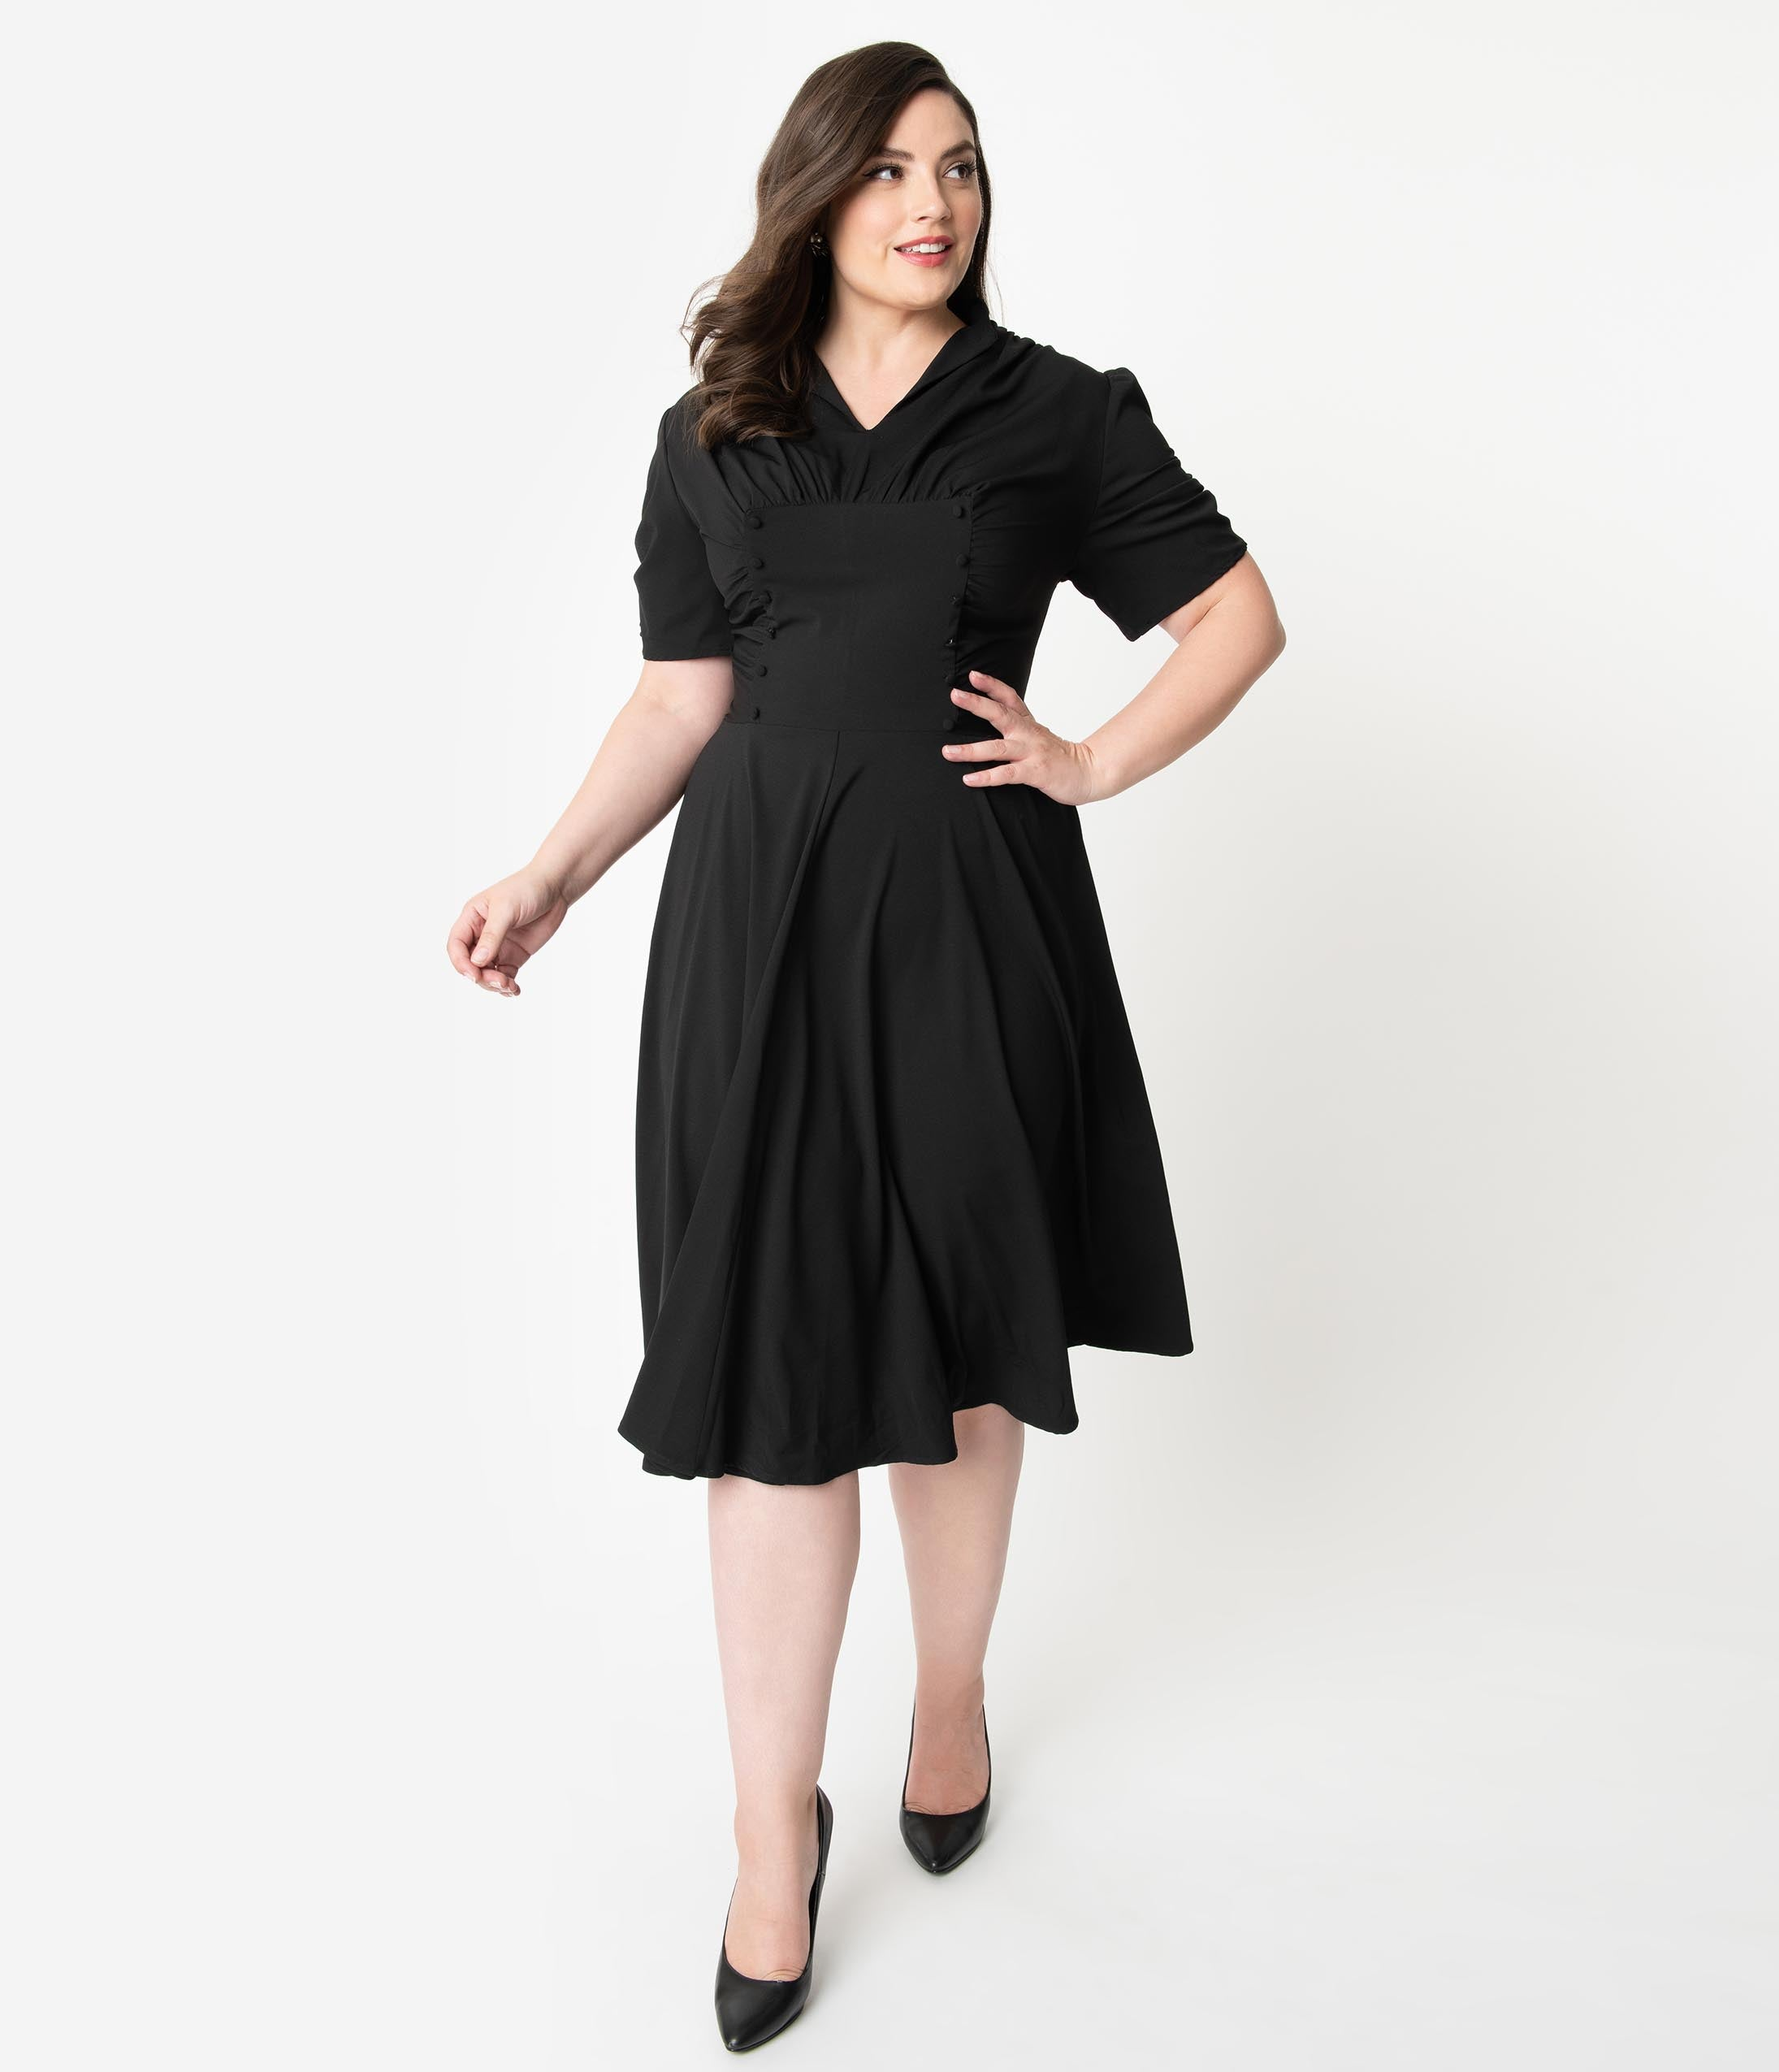 1940s Plus Size Dresses | Swing Dress, Tea Dress Unique Vintage Plus Size 1940S Style Black Short Sleeve Camilla Midi Dress $88.00 AT vintagedancer.com